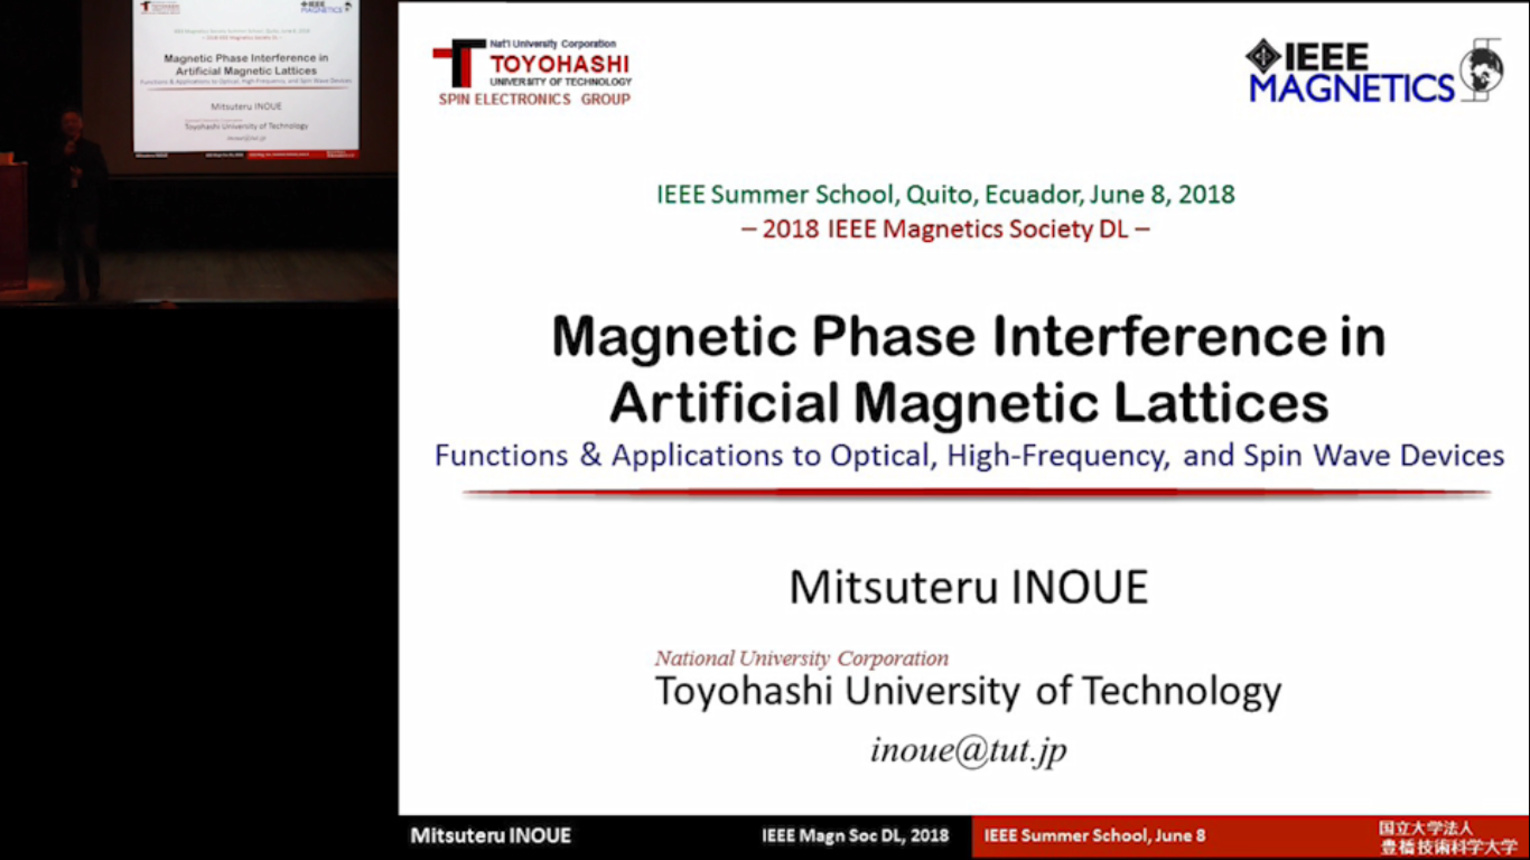 IEEE Magnetics Society